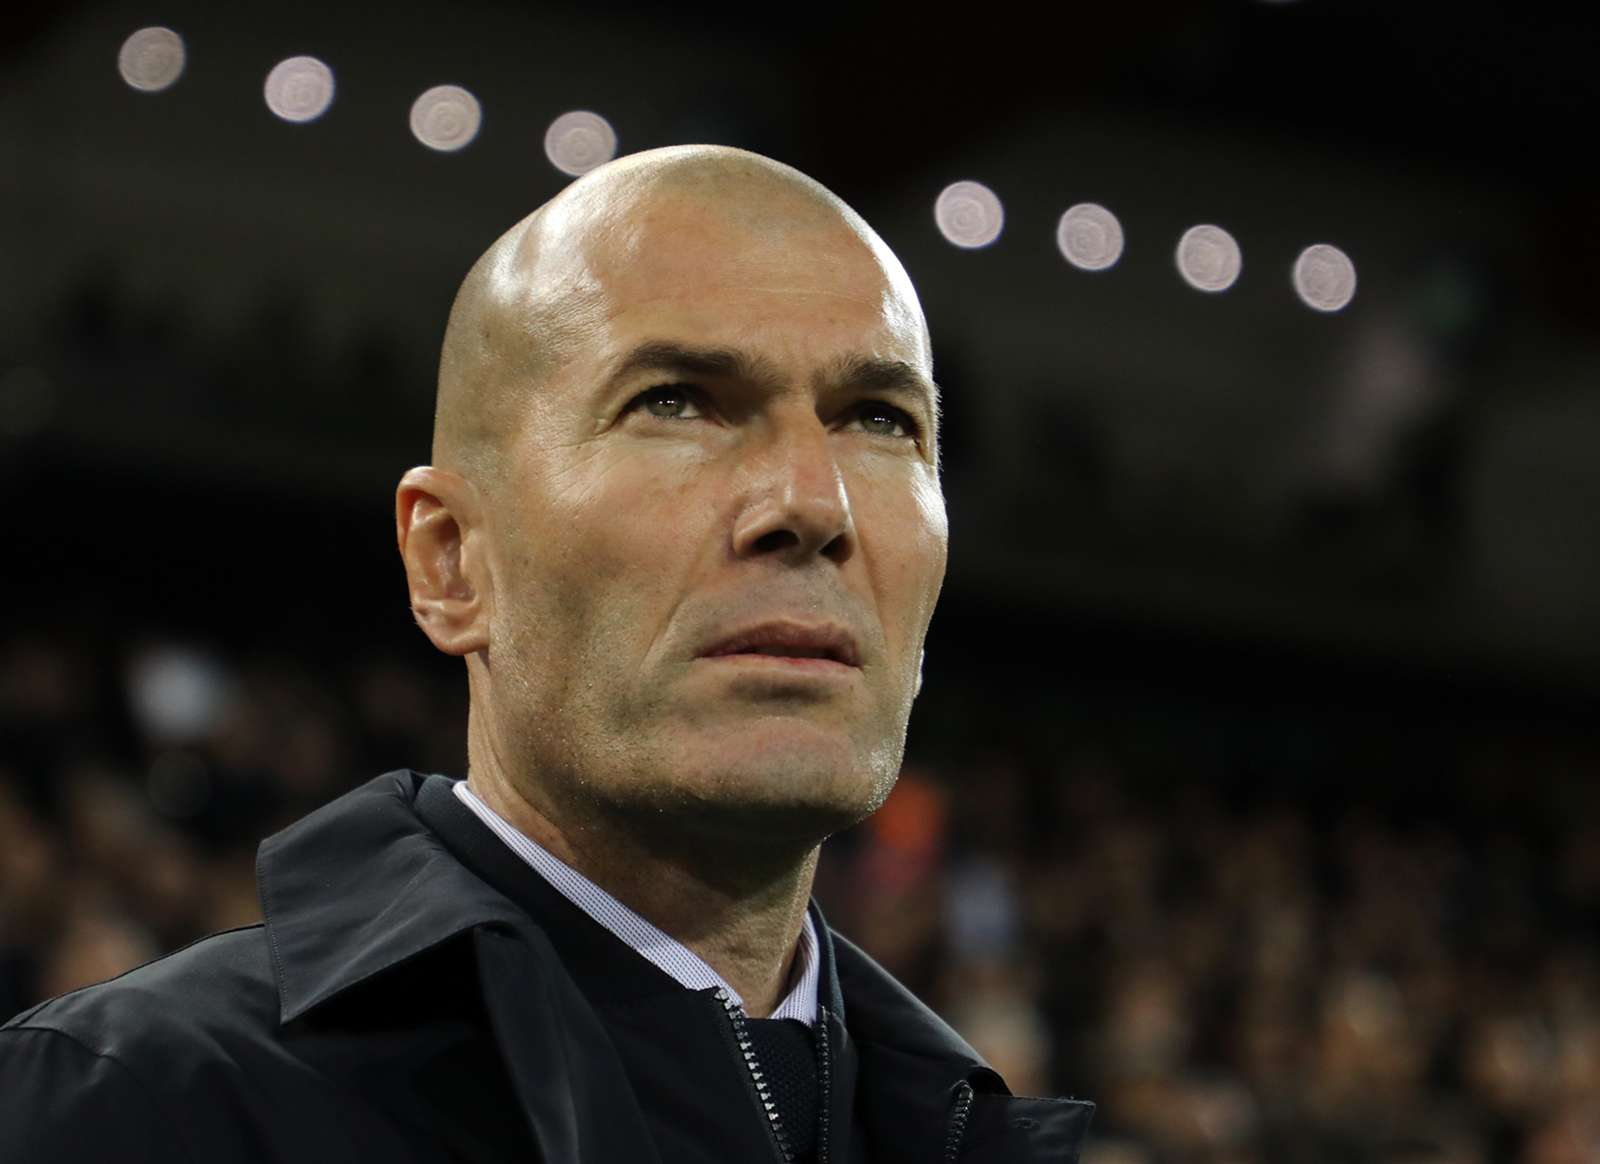 Zidane: We have no problems in attack and we will come back stronger in the new year